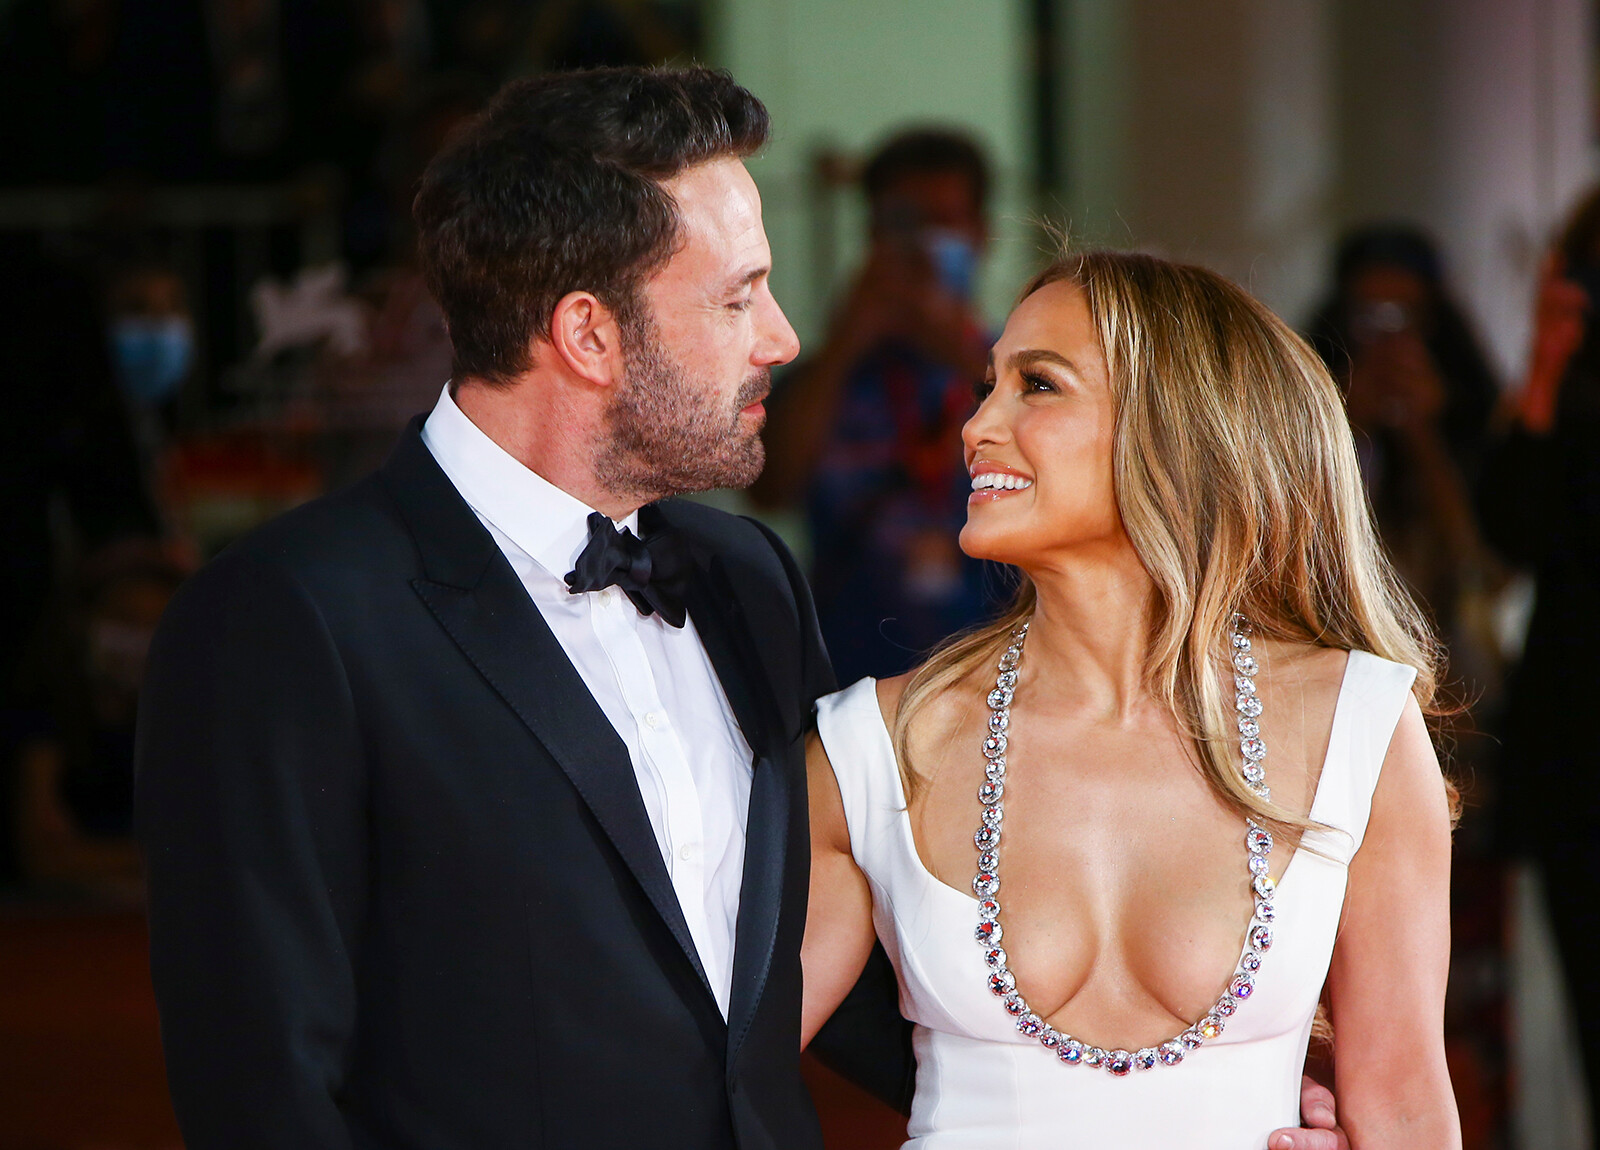 <i>Joel C. Ryan/Invision/AP</i><br/>Ben Affleck and Jennifer Lopez stand together at the Venice Film Festival in Venice